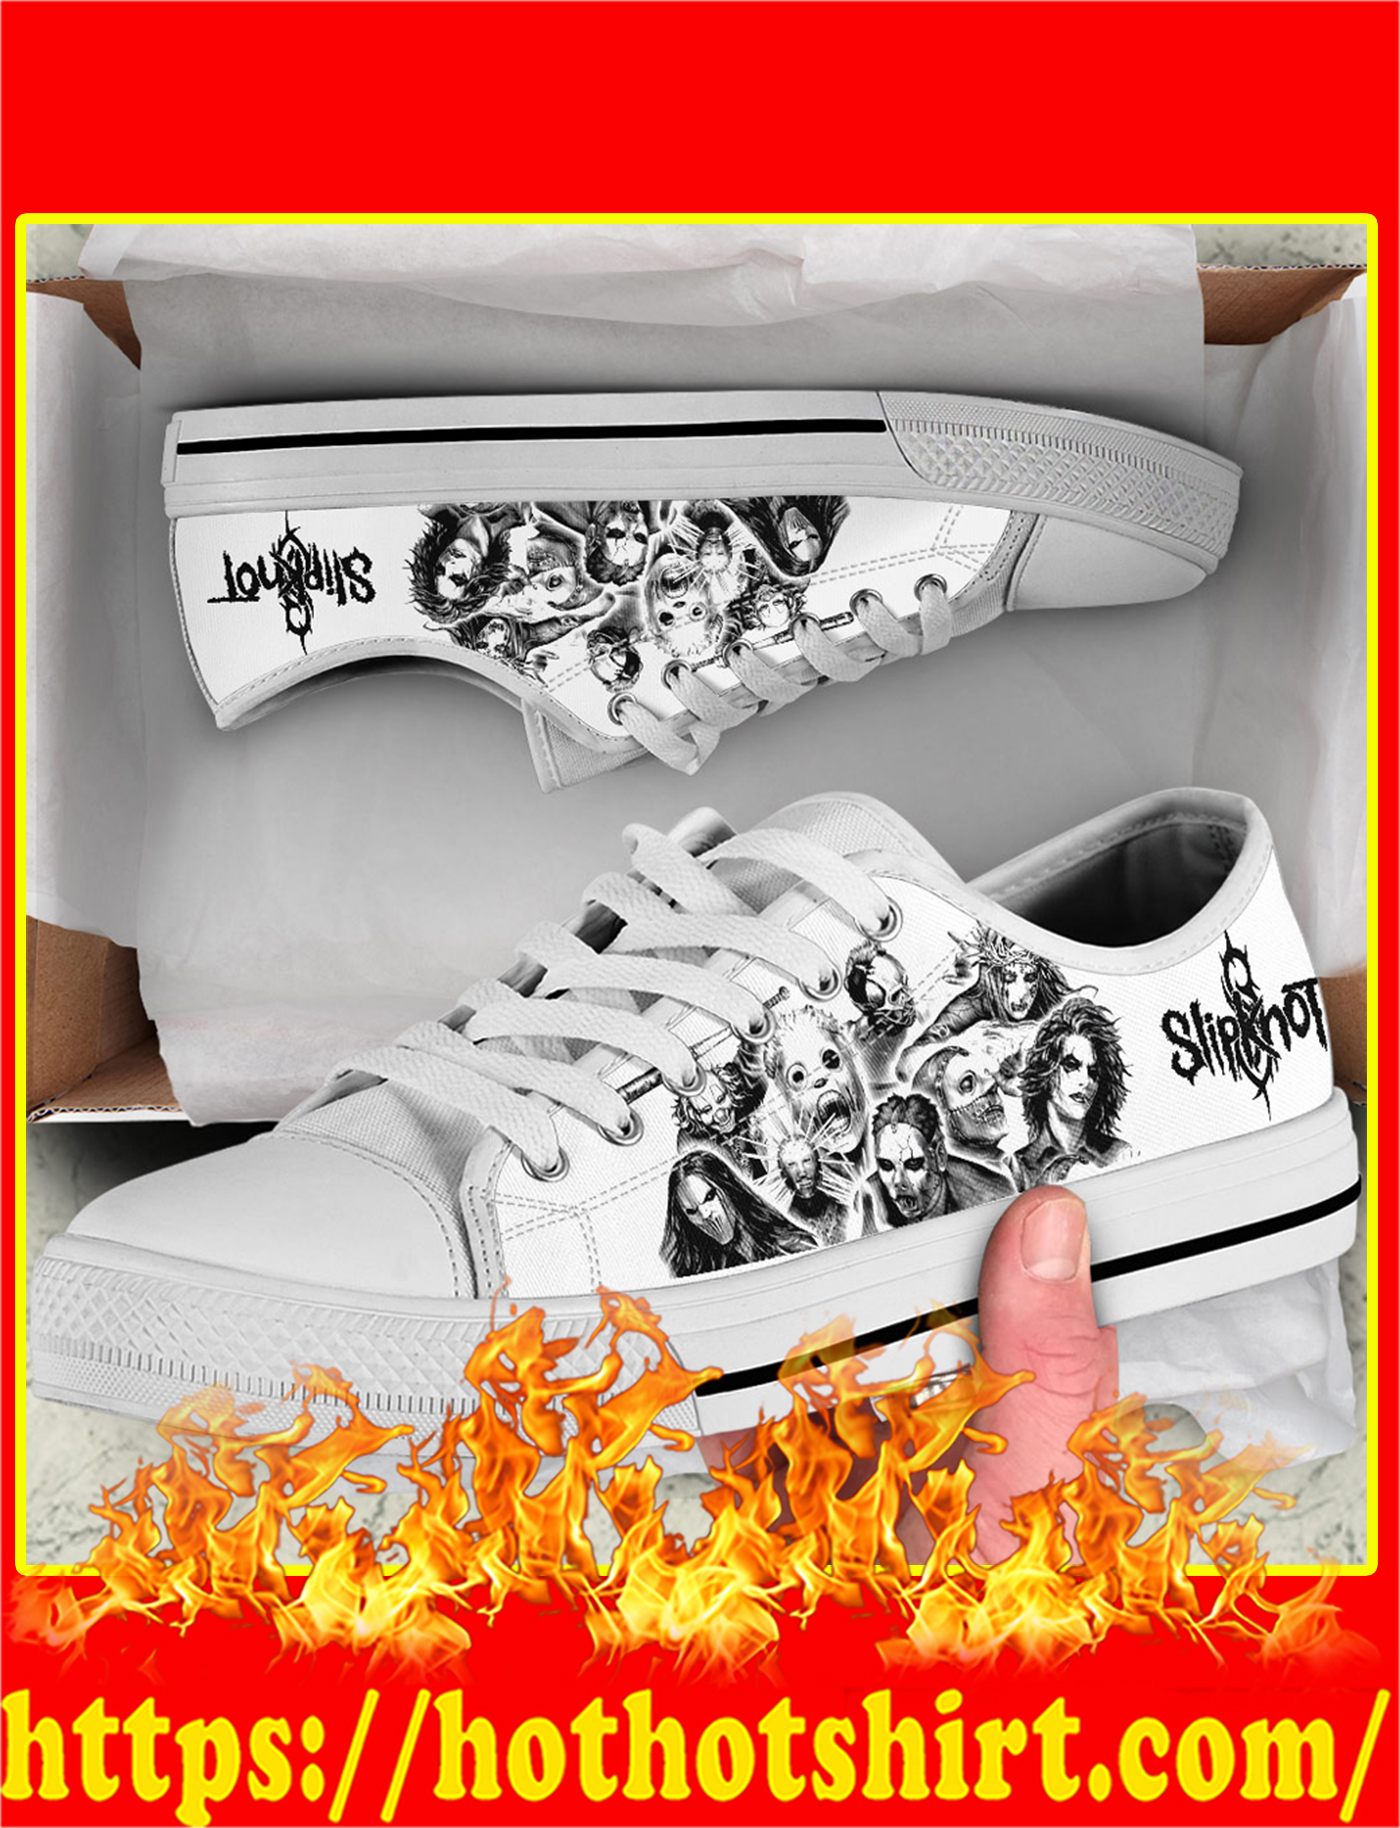 Slipknot Low Top Shoes-picture 1